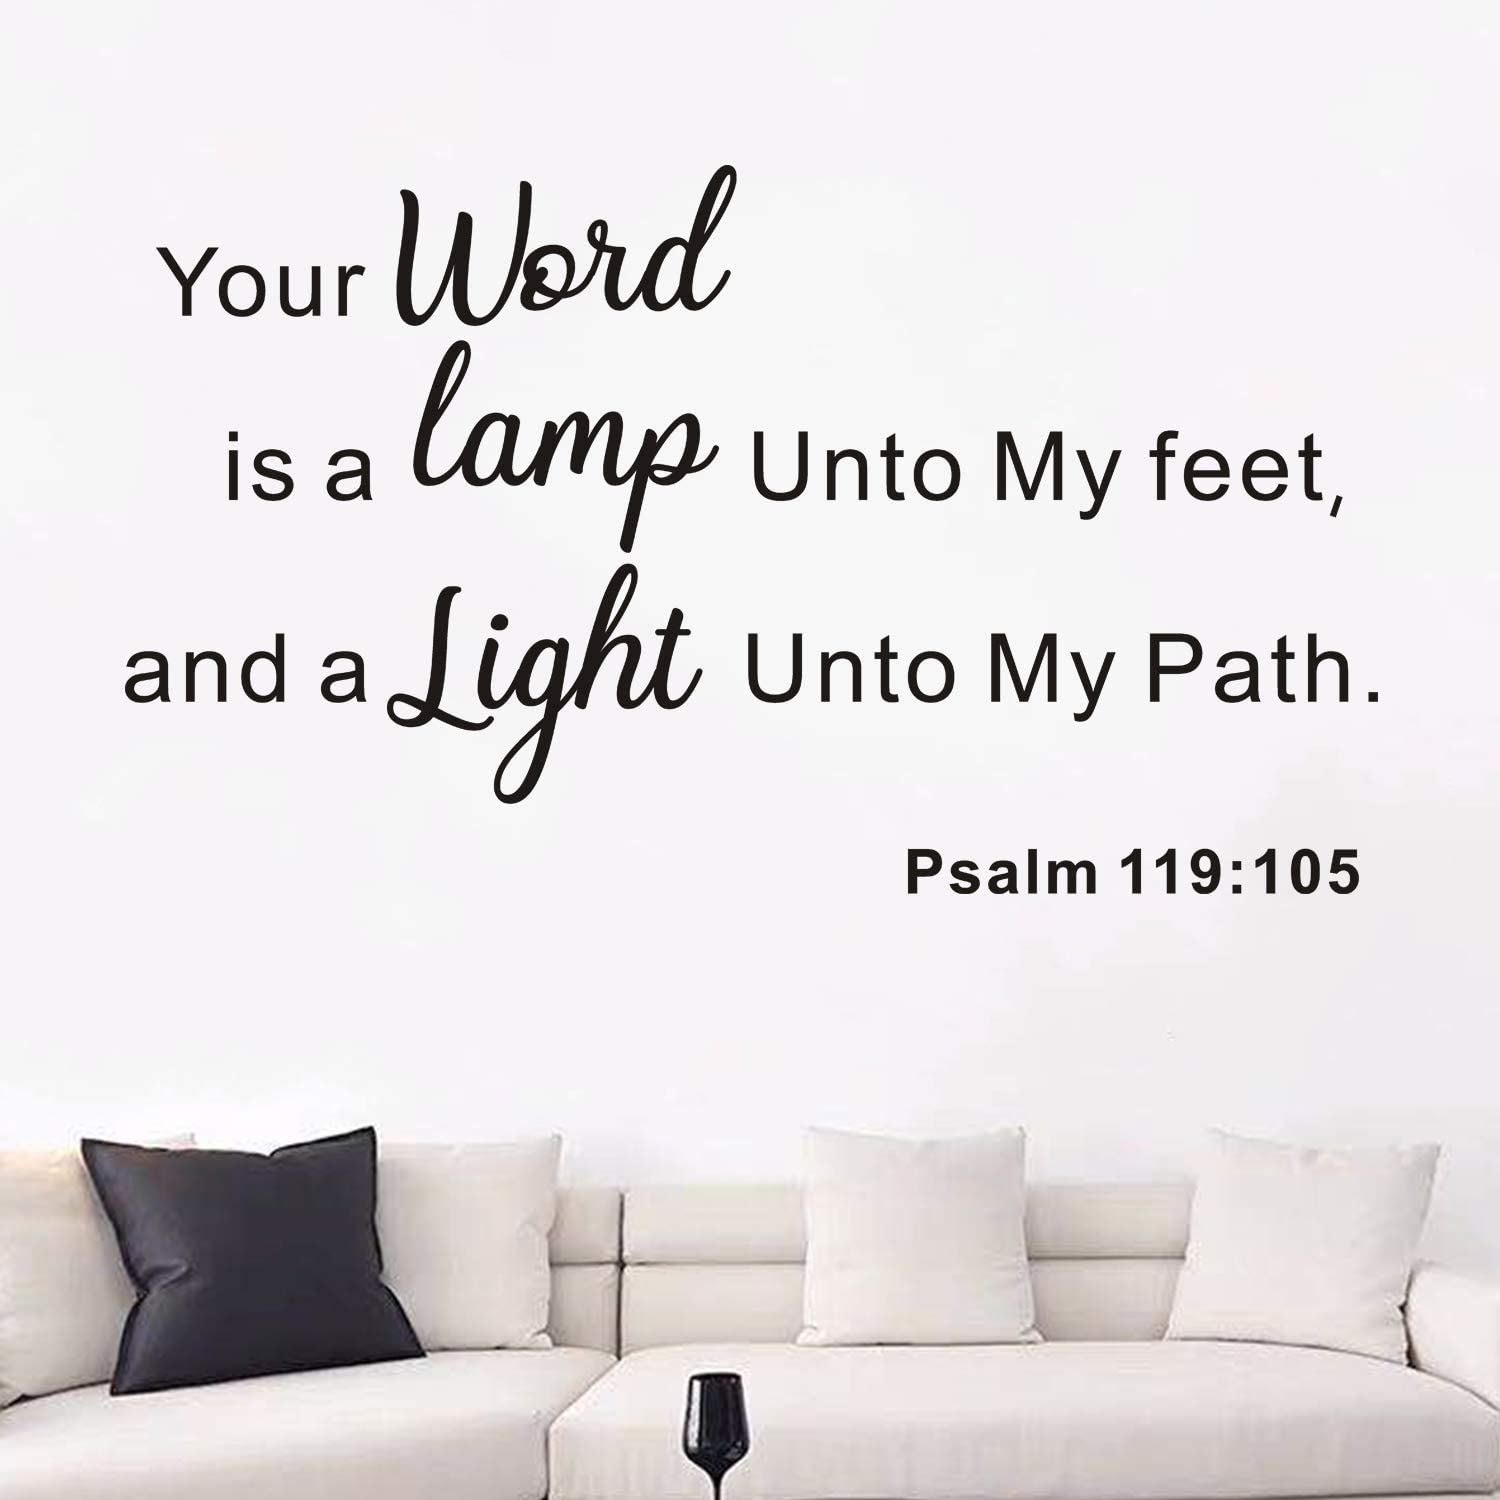 AnFigure Bible Verse Wall Decal, Quotes Wall Decal, Scripture Faith Biblical Religious Home Art Decor Vinyl Stickers Your Word is a Lamp To My Feet and a Light To My Path Psalm 119:105 Black 27.4